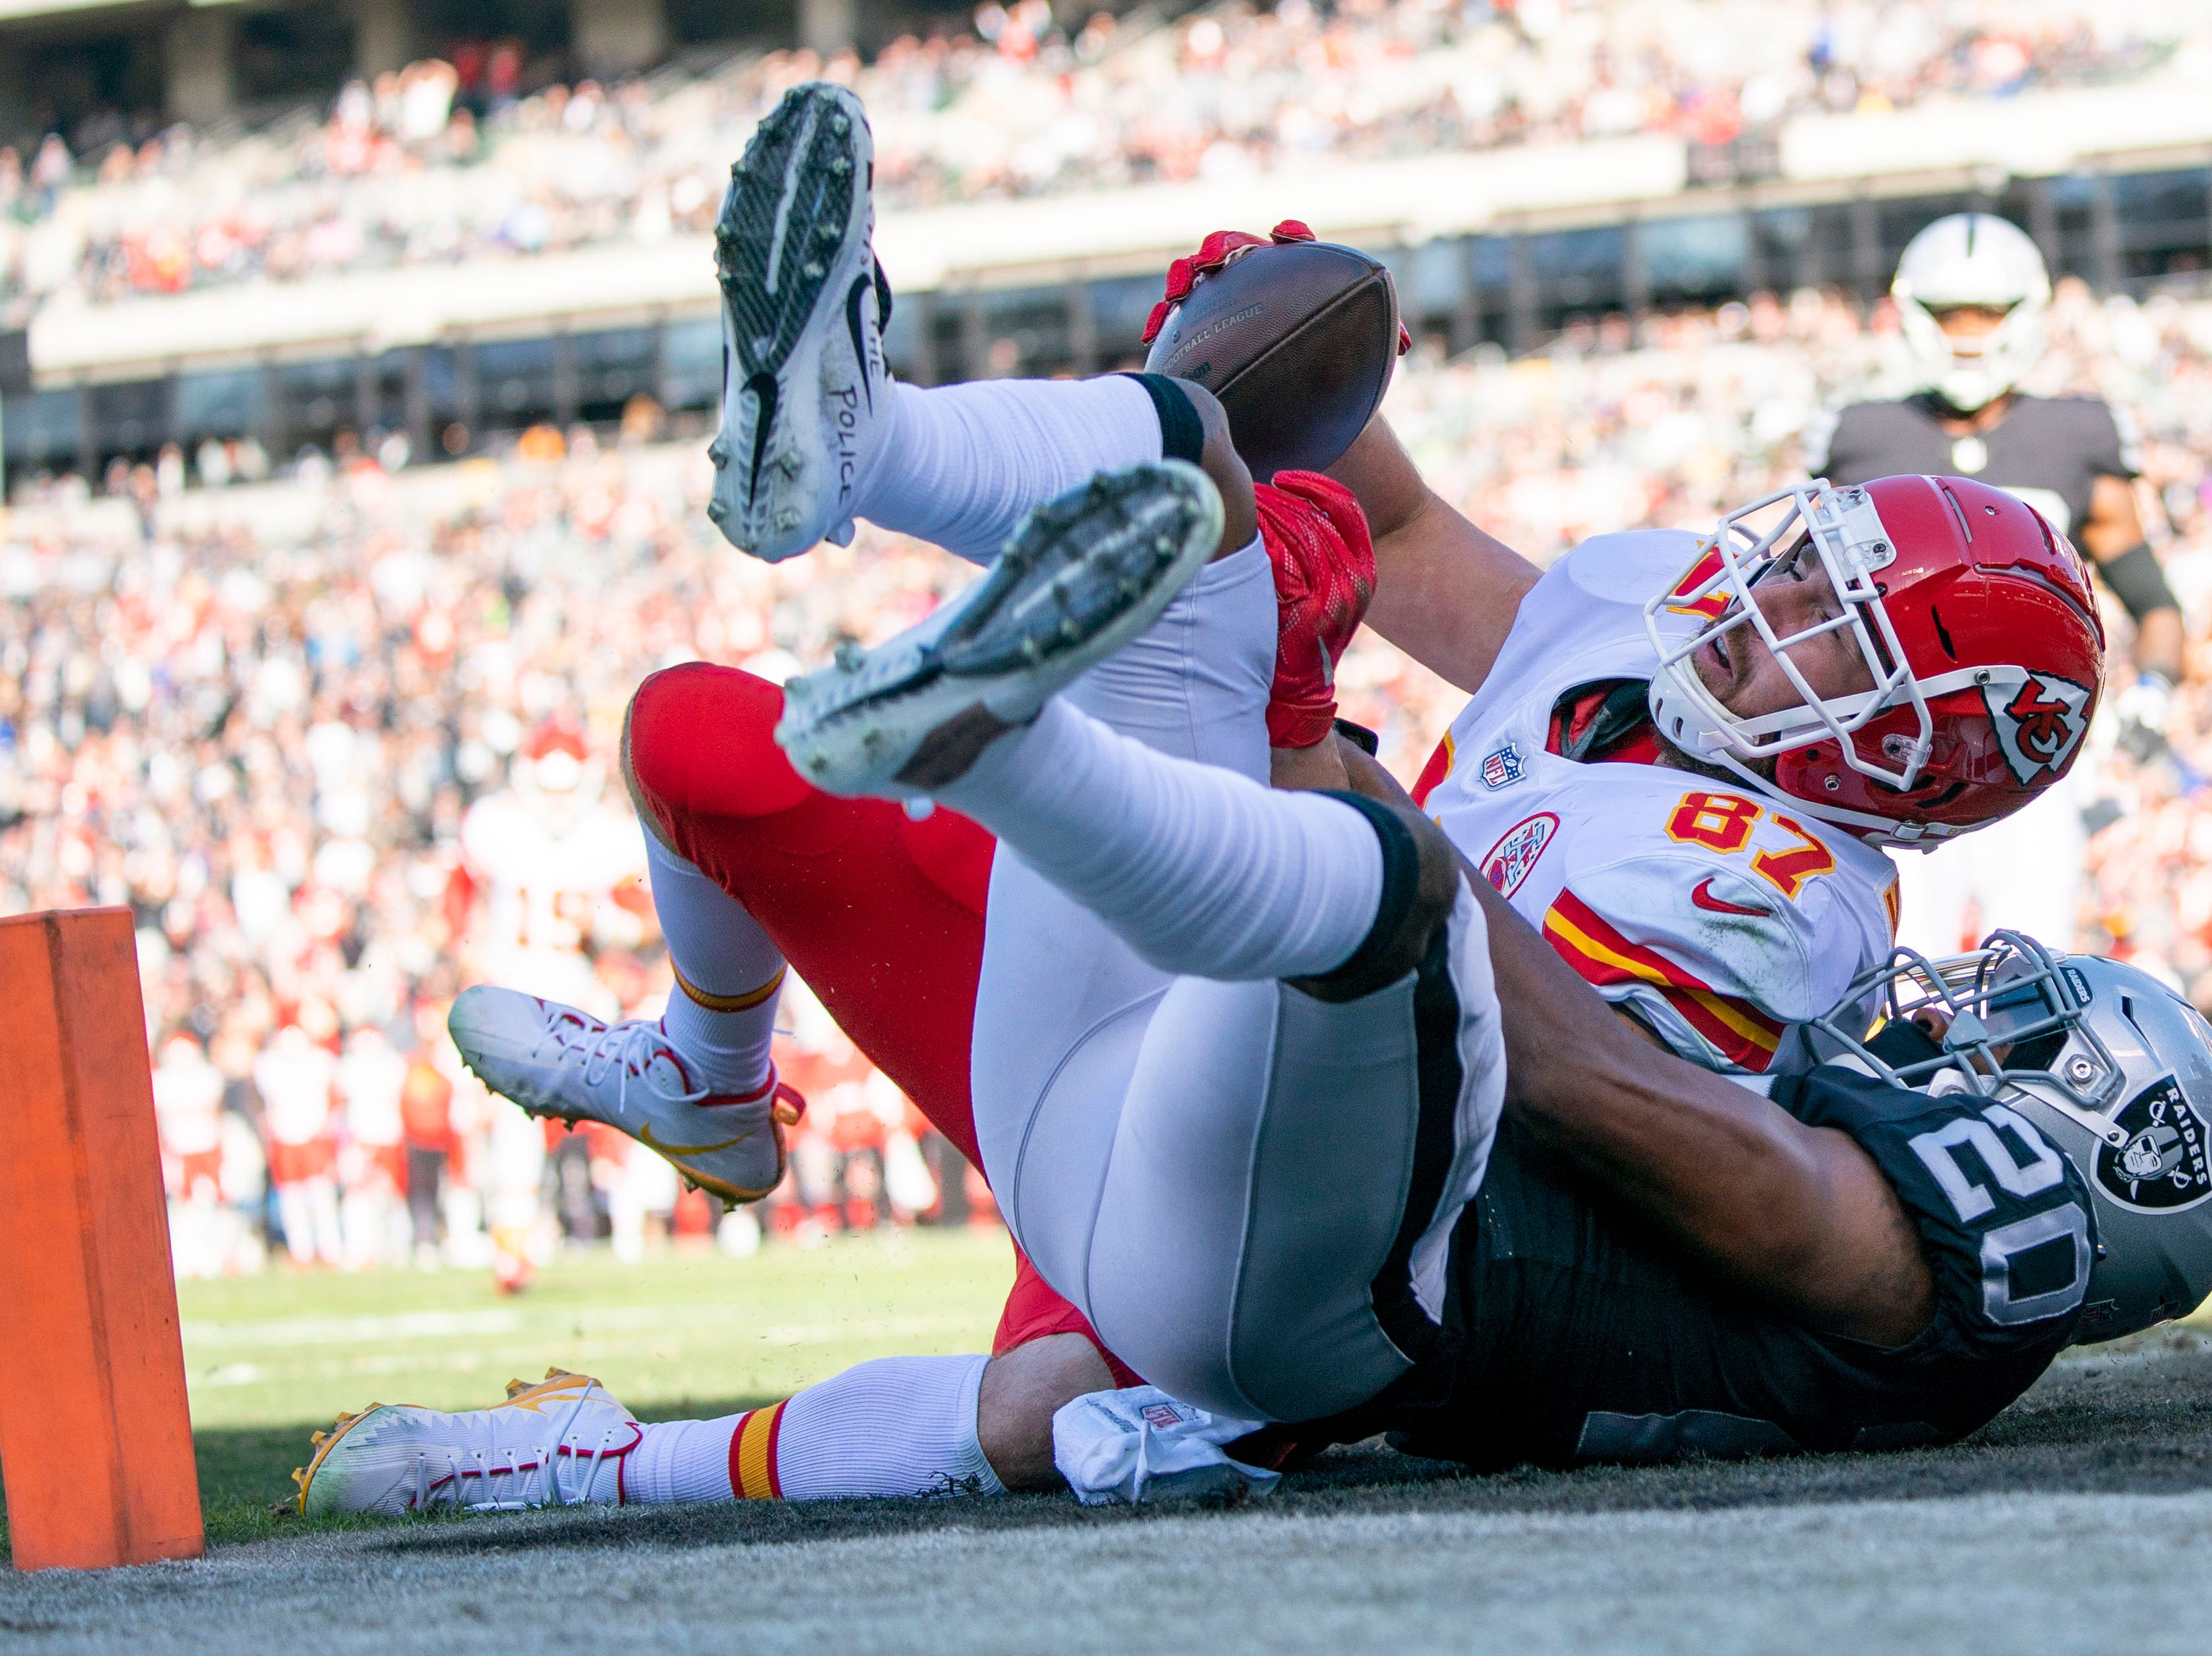 Chiefs tight end Travis Kelce scores a touchdown agains Raiders cornerback Daryl Worley in the first quarter.